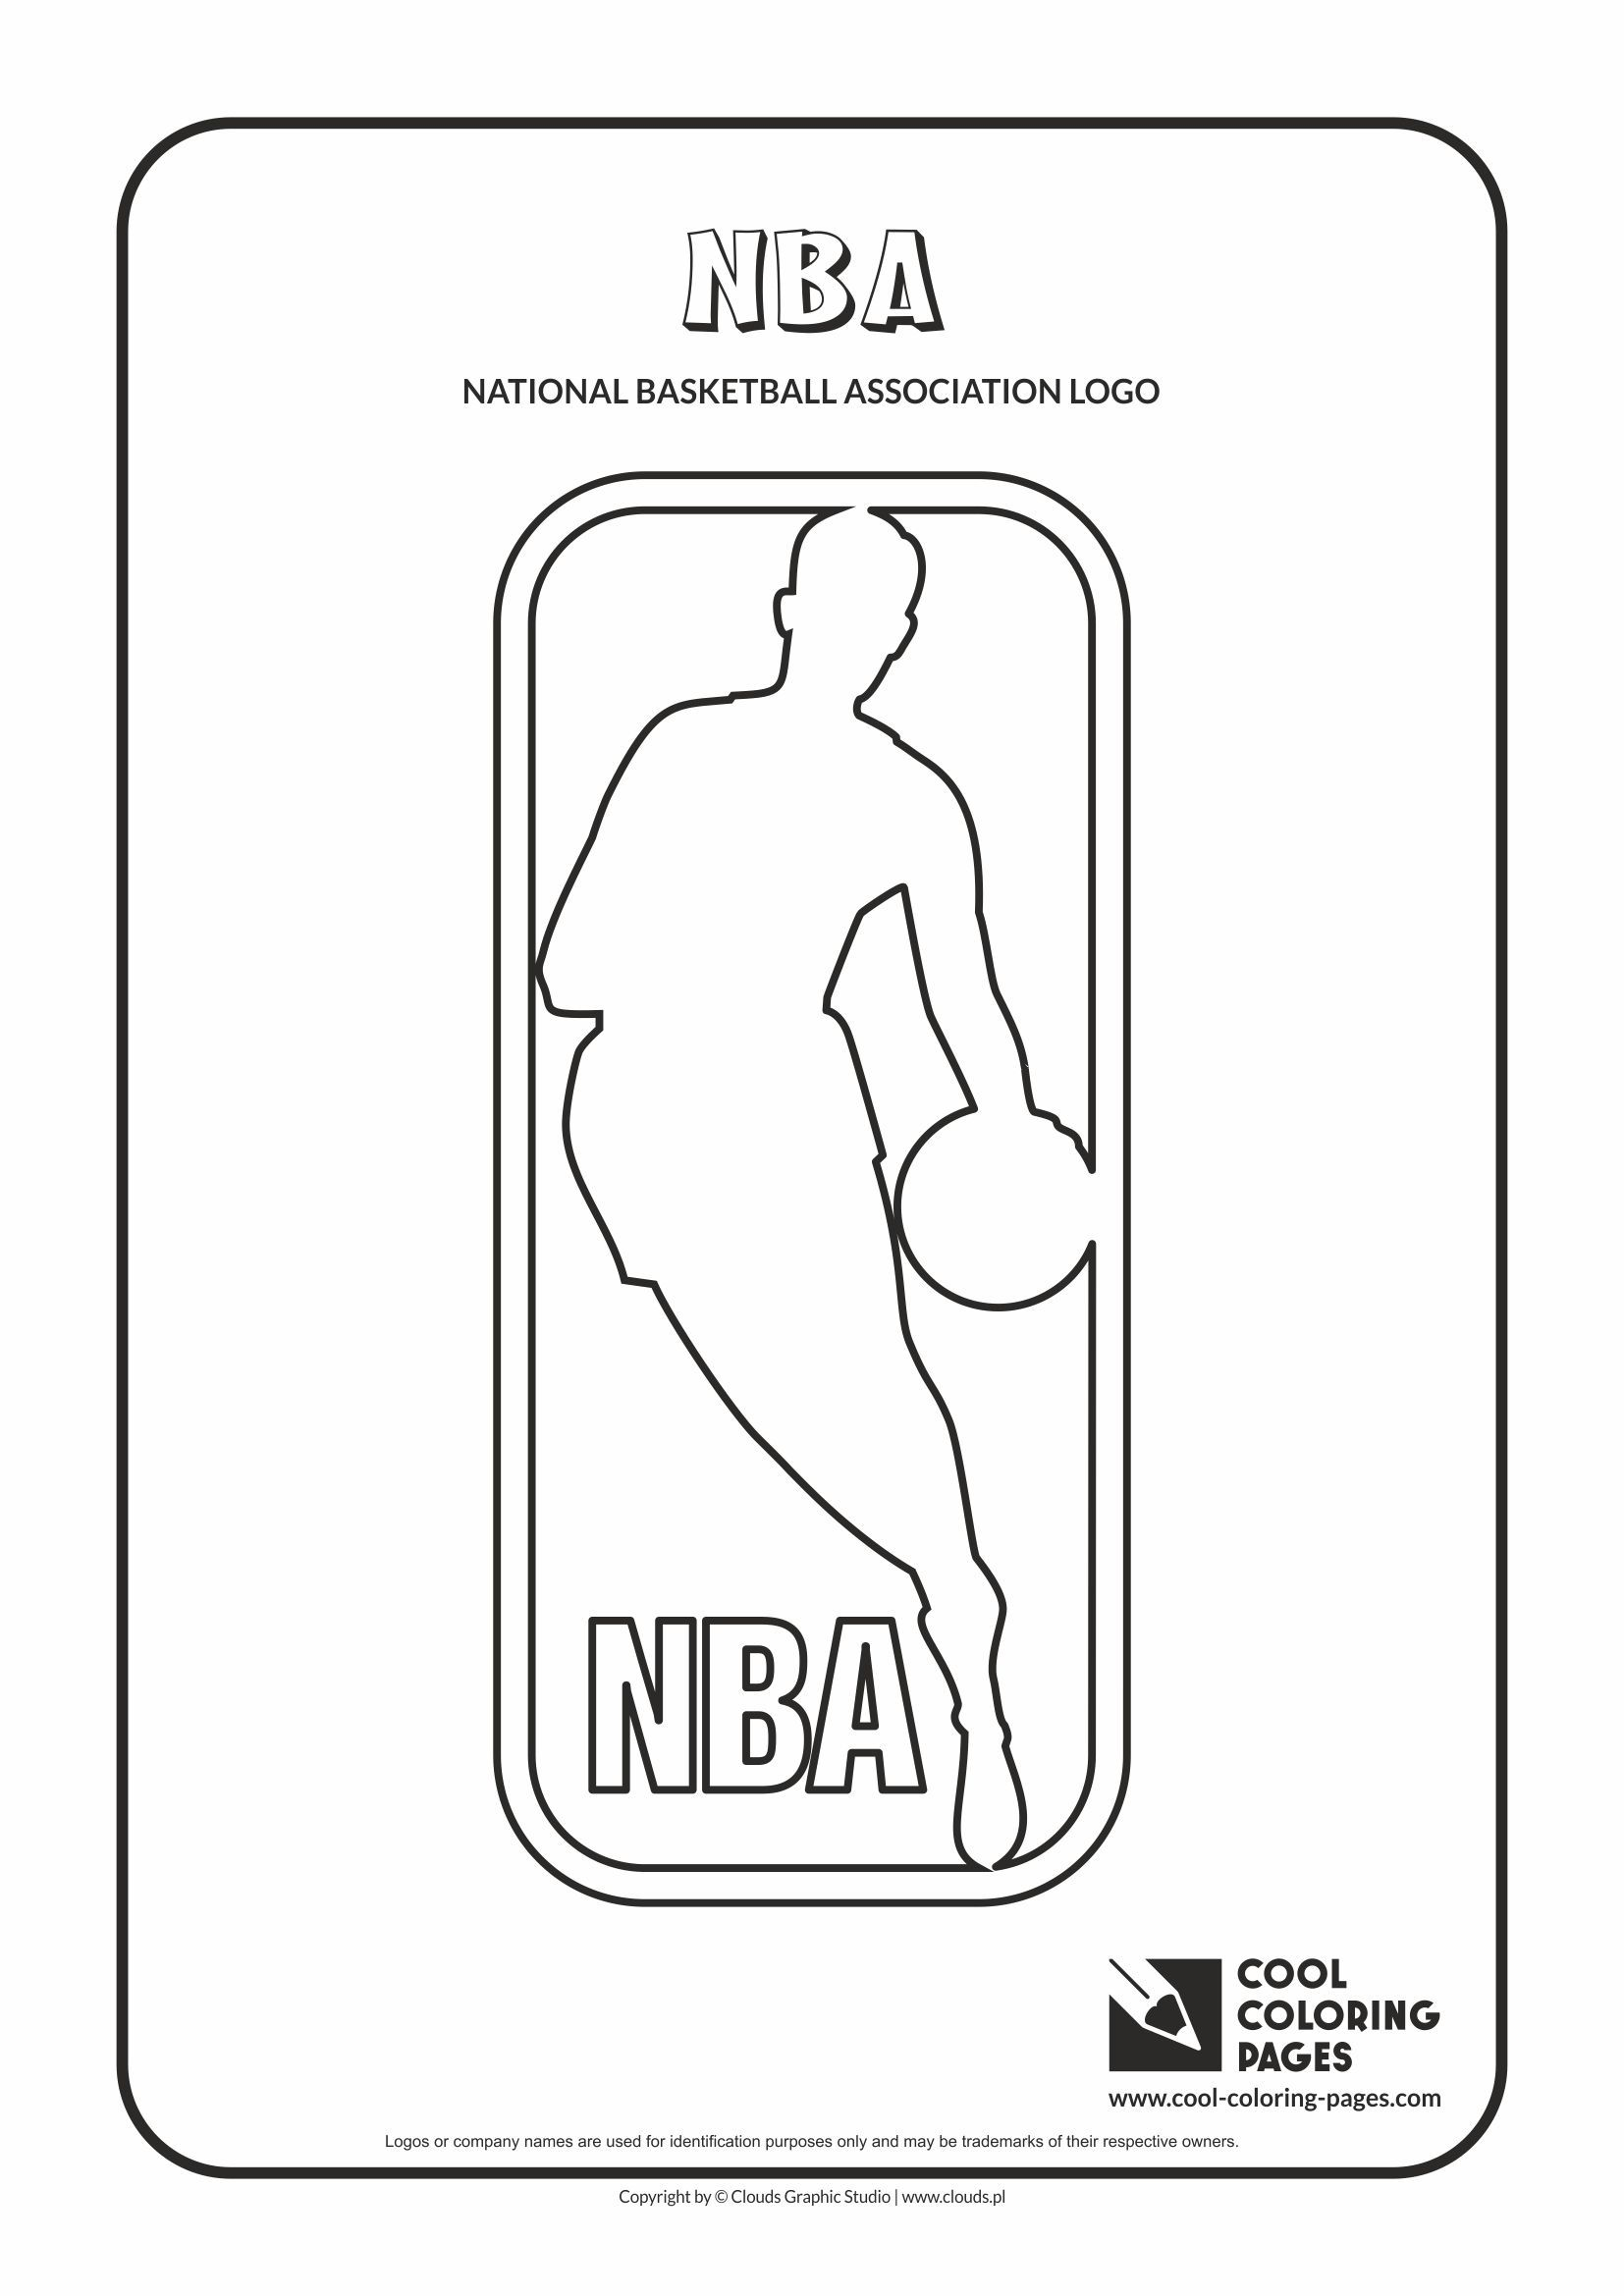 Cool Coloring Pages - NBA Logo coloring pages / National Basketball ...